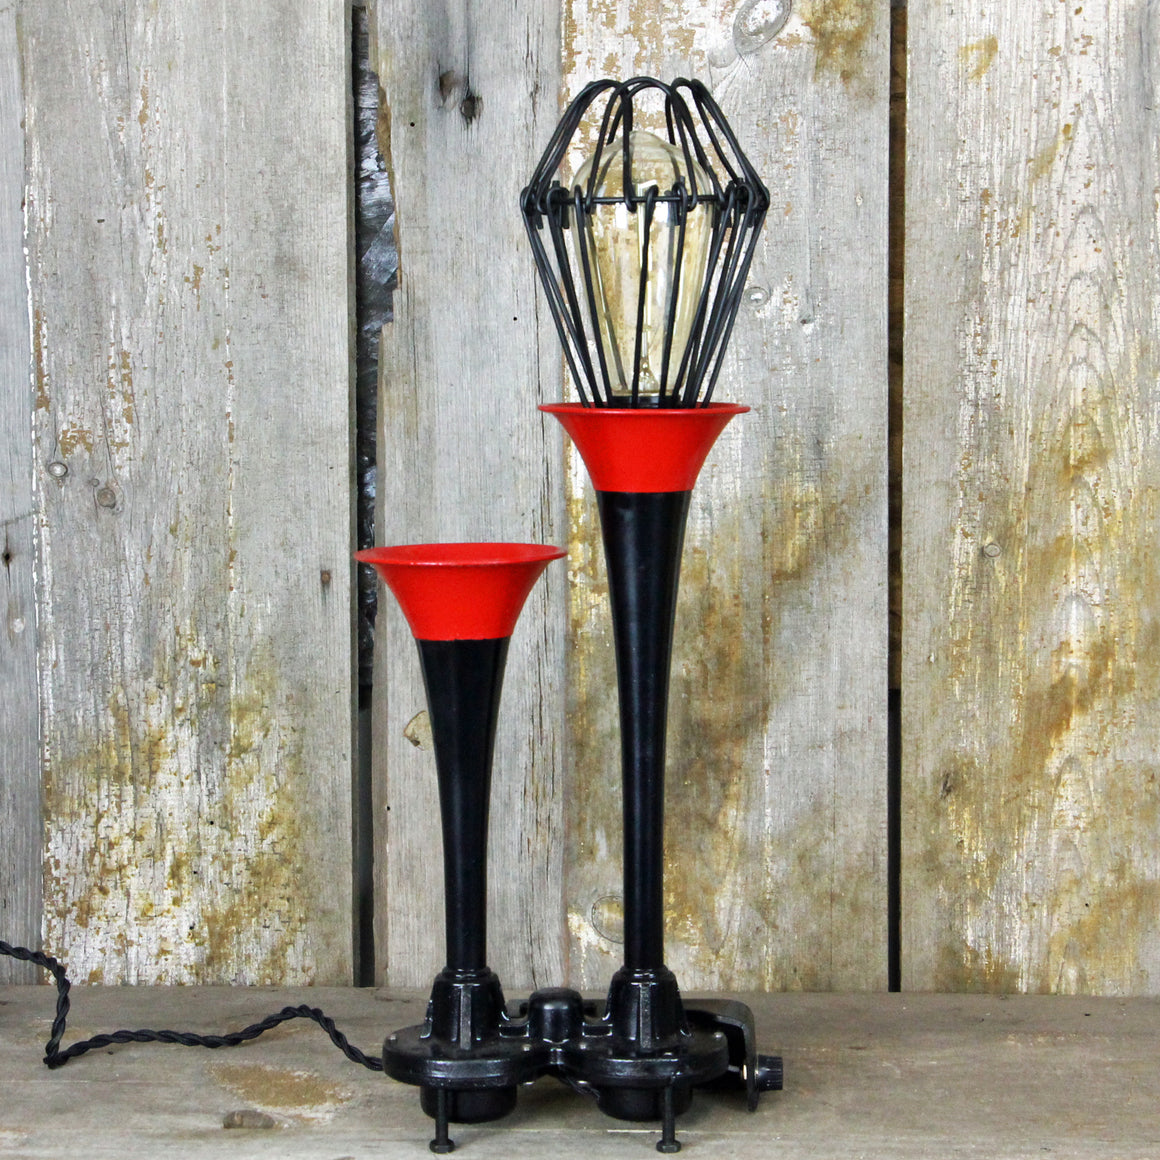 Vintage Car Air Horn Table Lamp Steampunk Industrial Desk Lamp - #283 - The Lighting Works